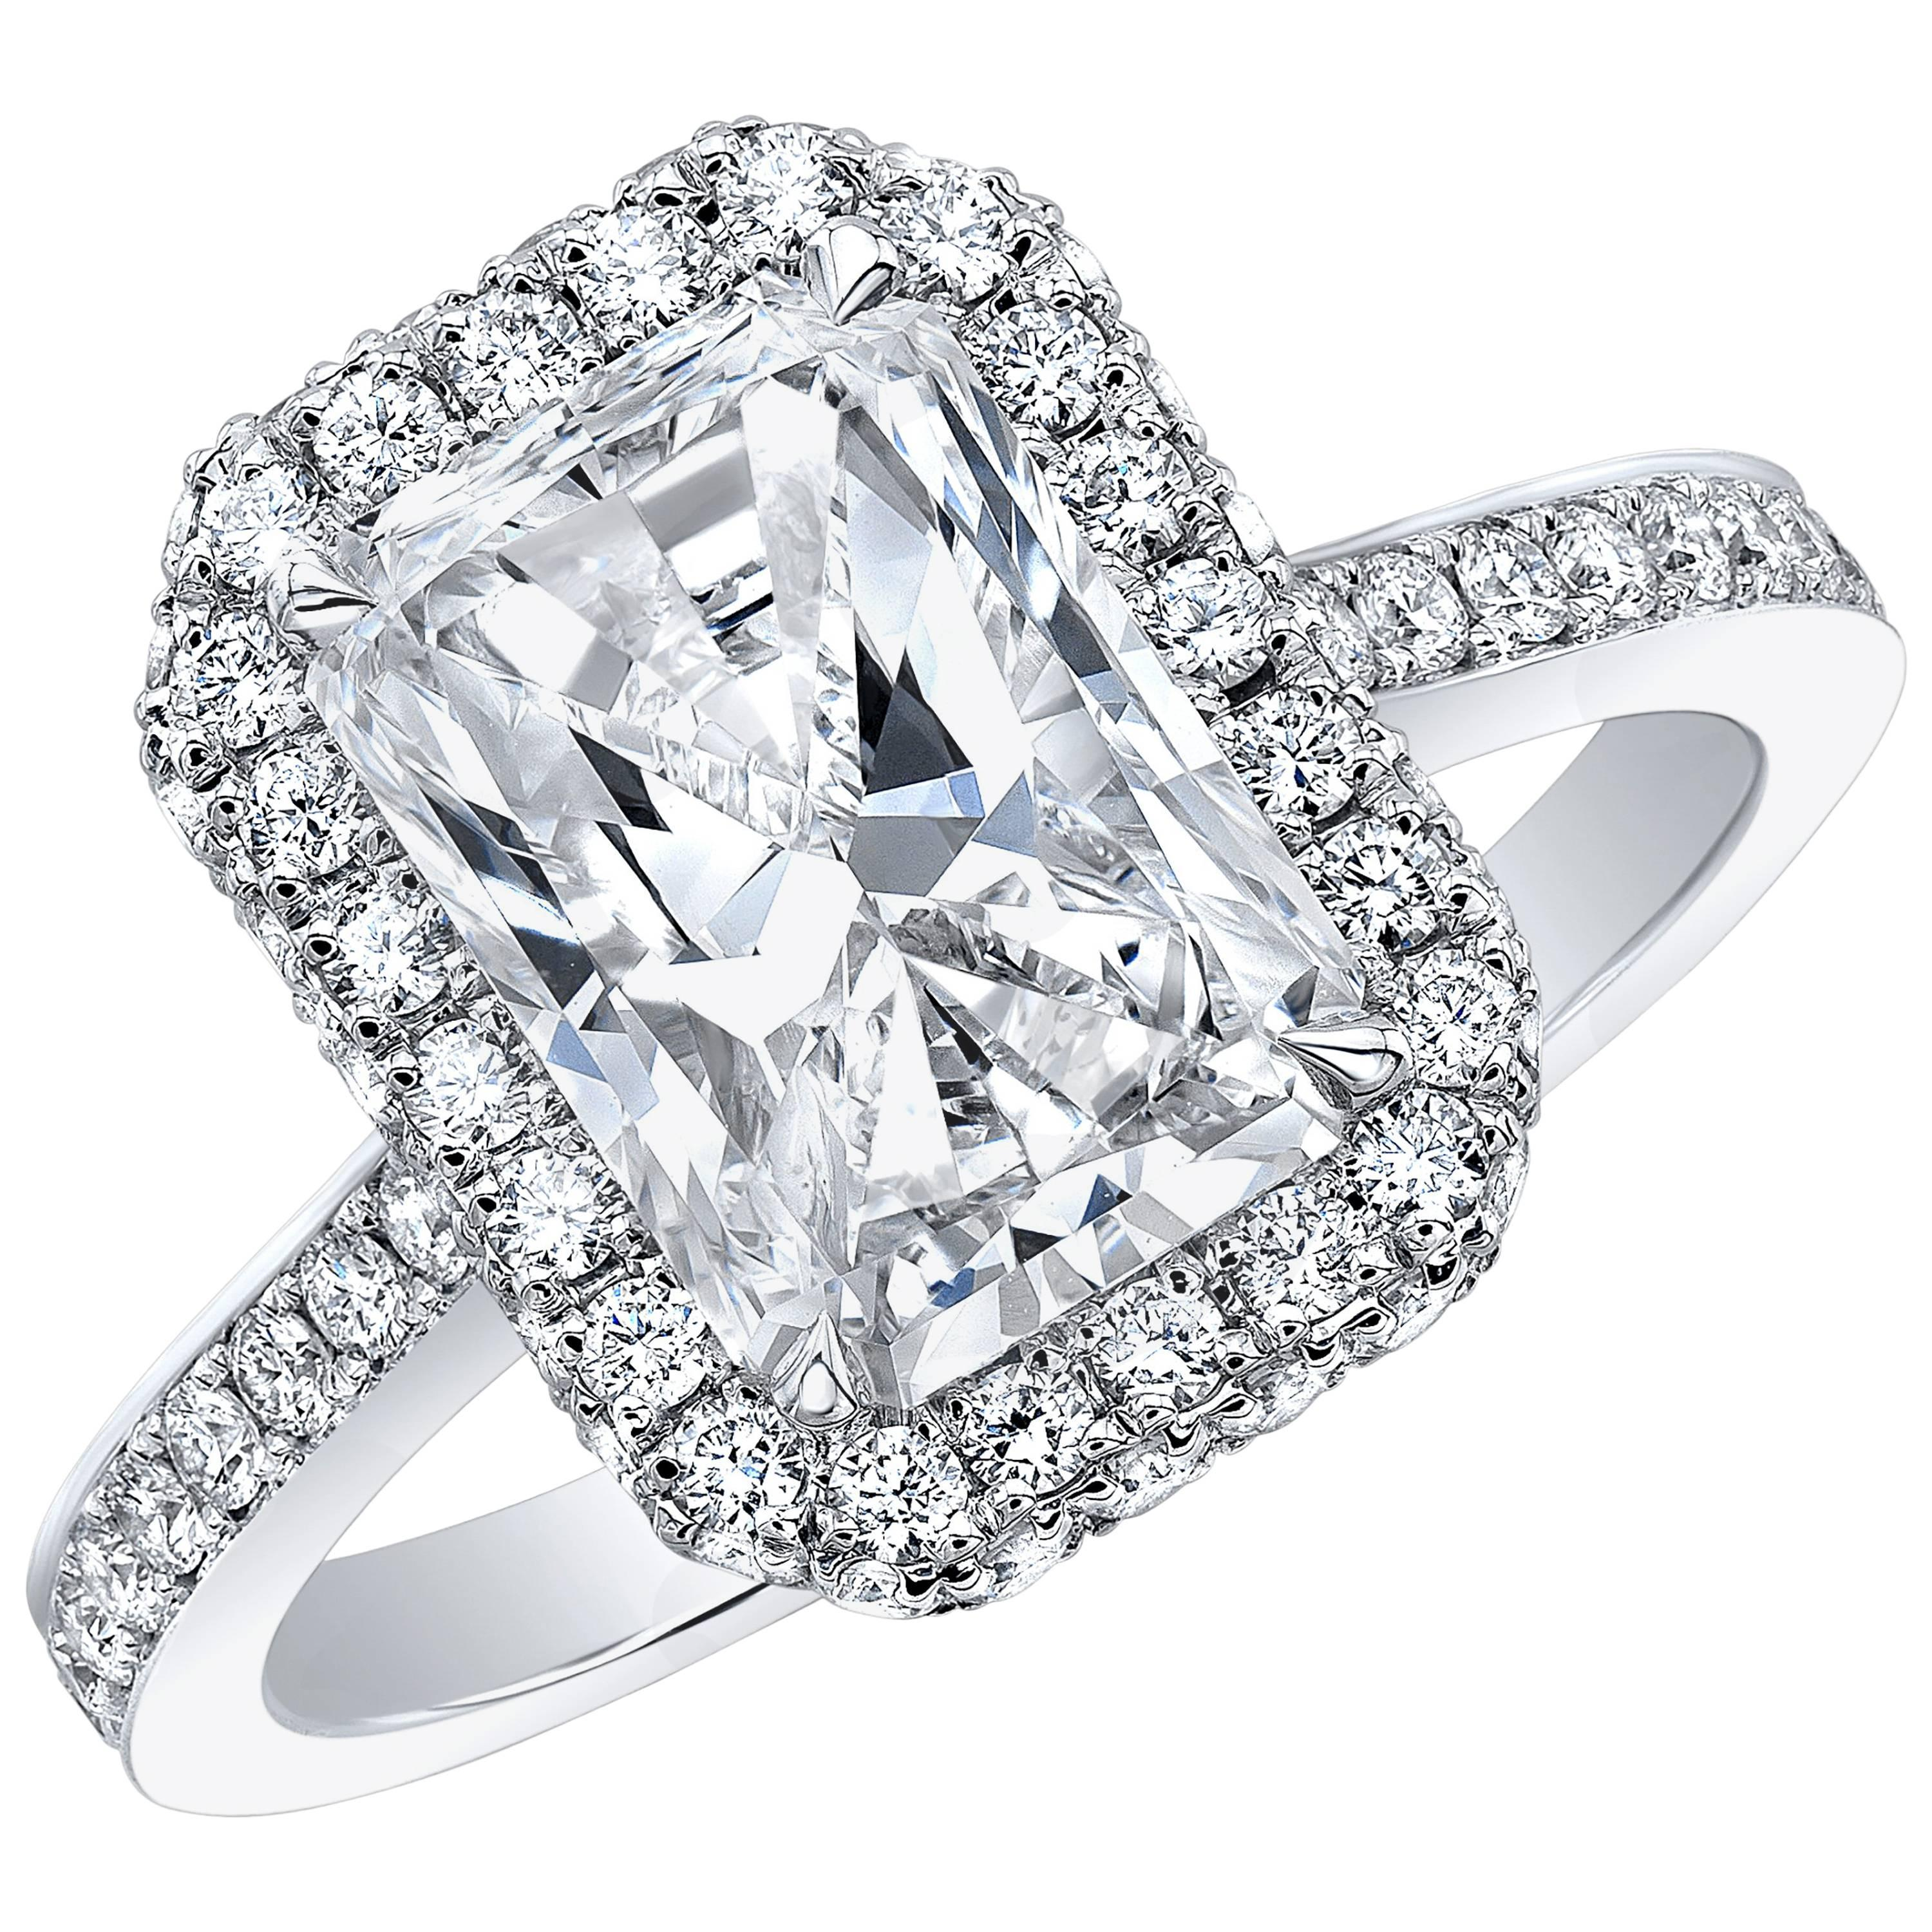 ring rings solitaire platinum engagement four claw diamond mounted